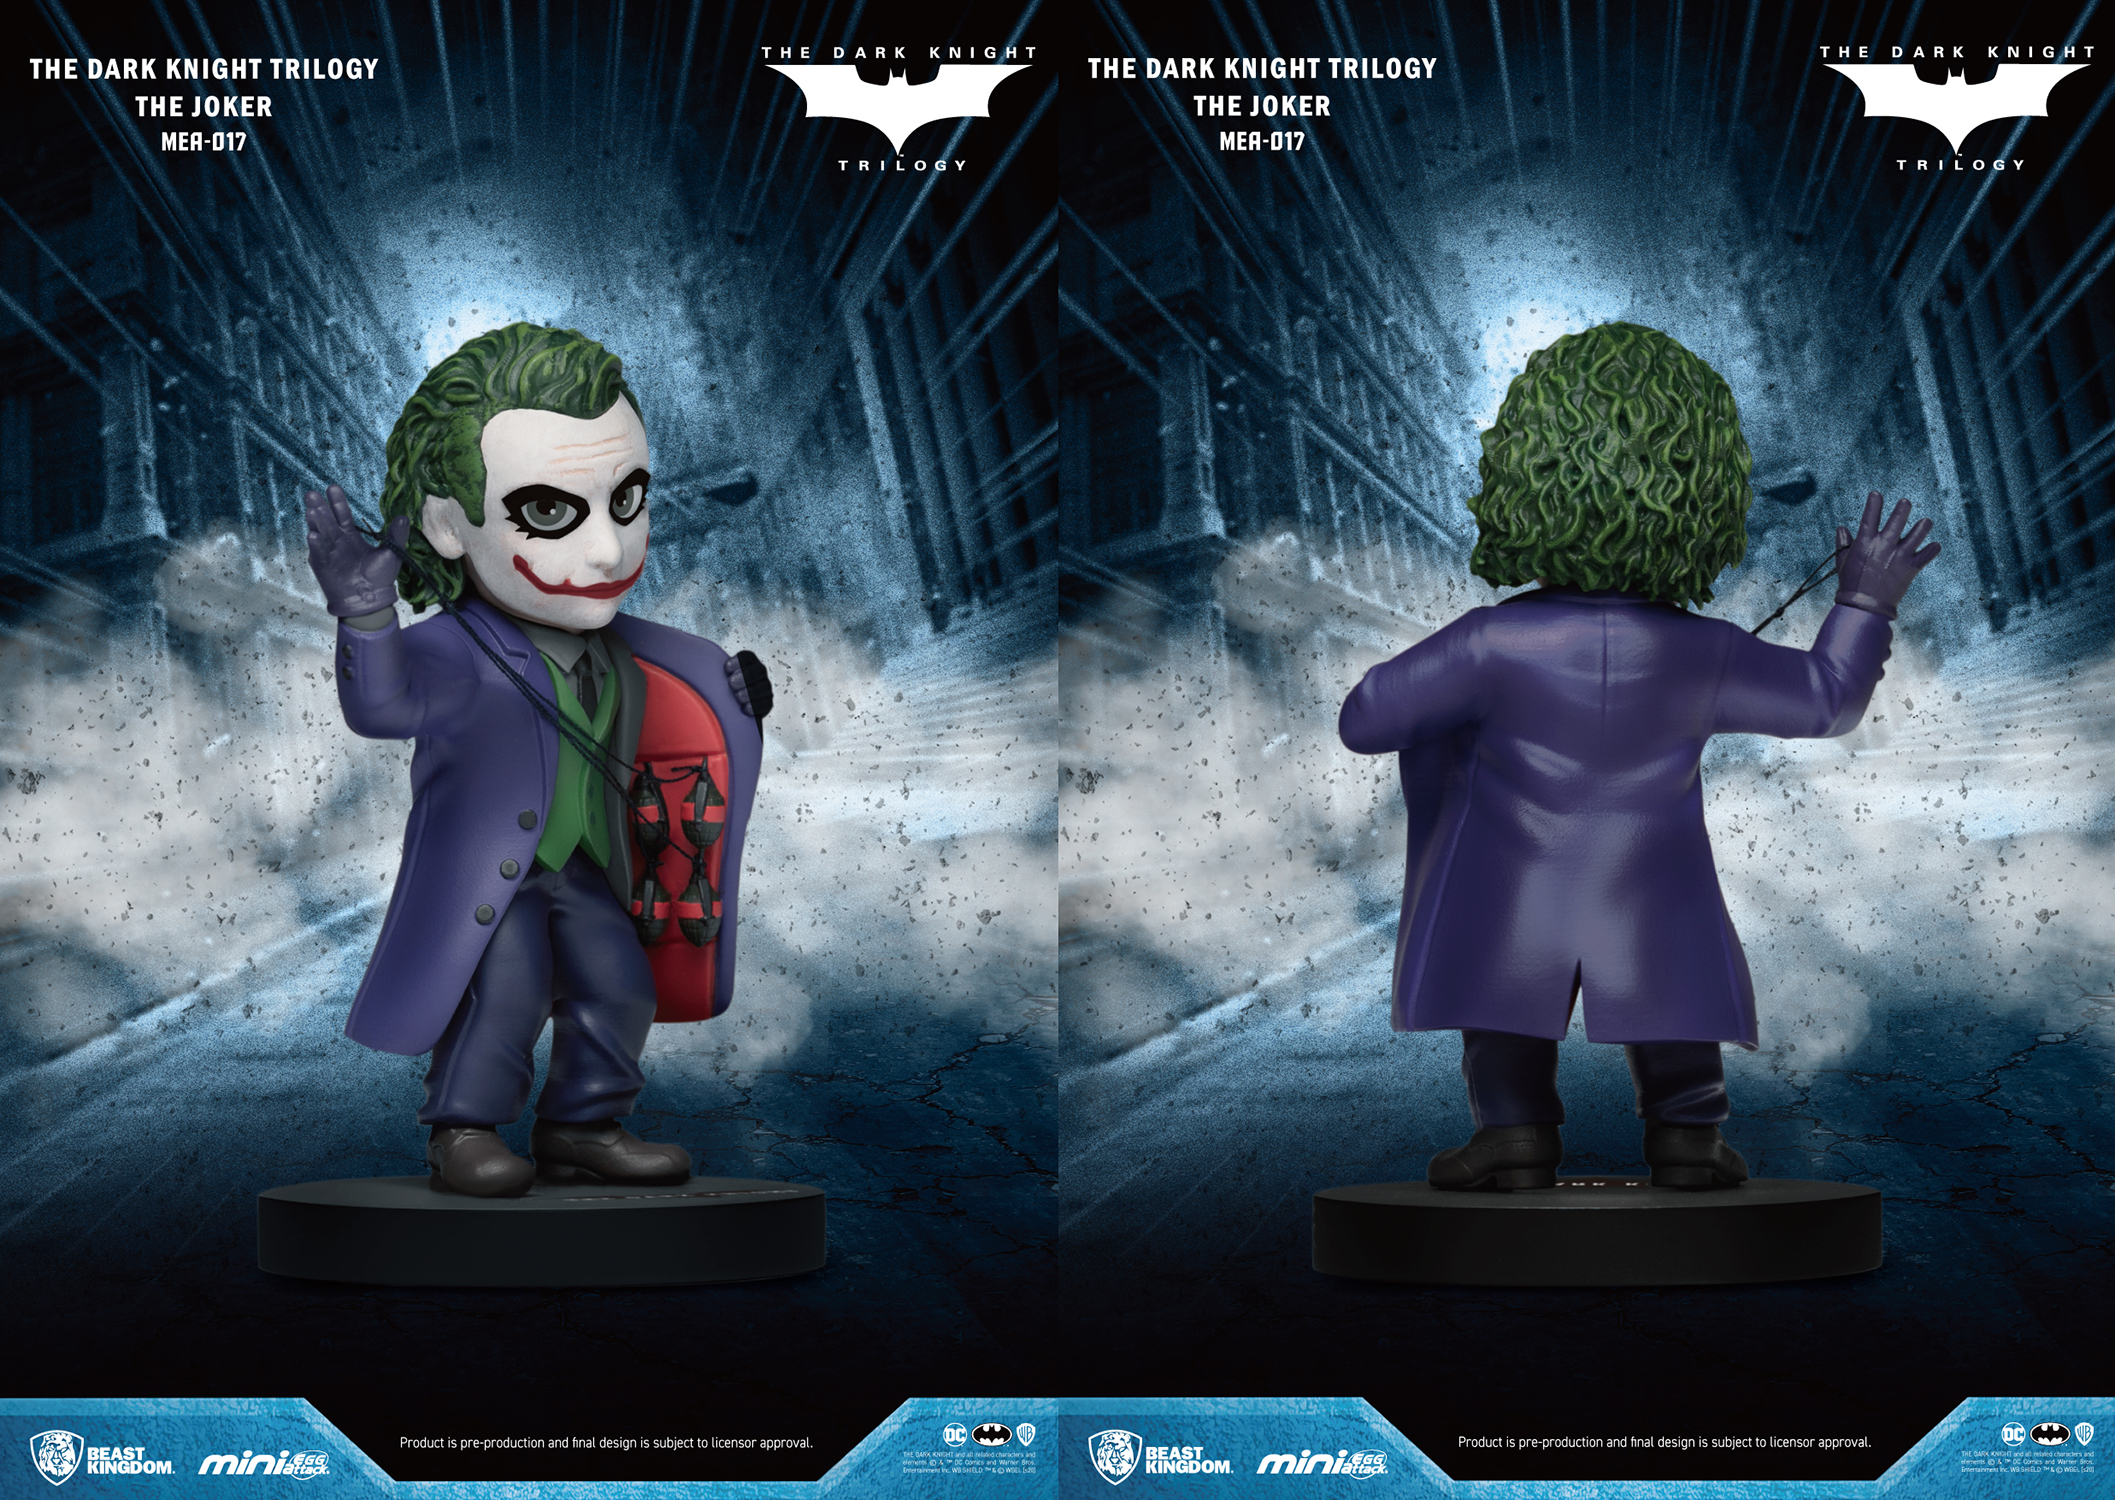 DARK KNIGHT TRILOGY MEA-017 JOKER PX FIG